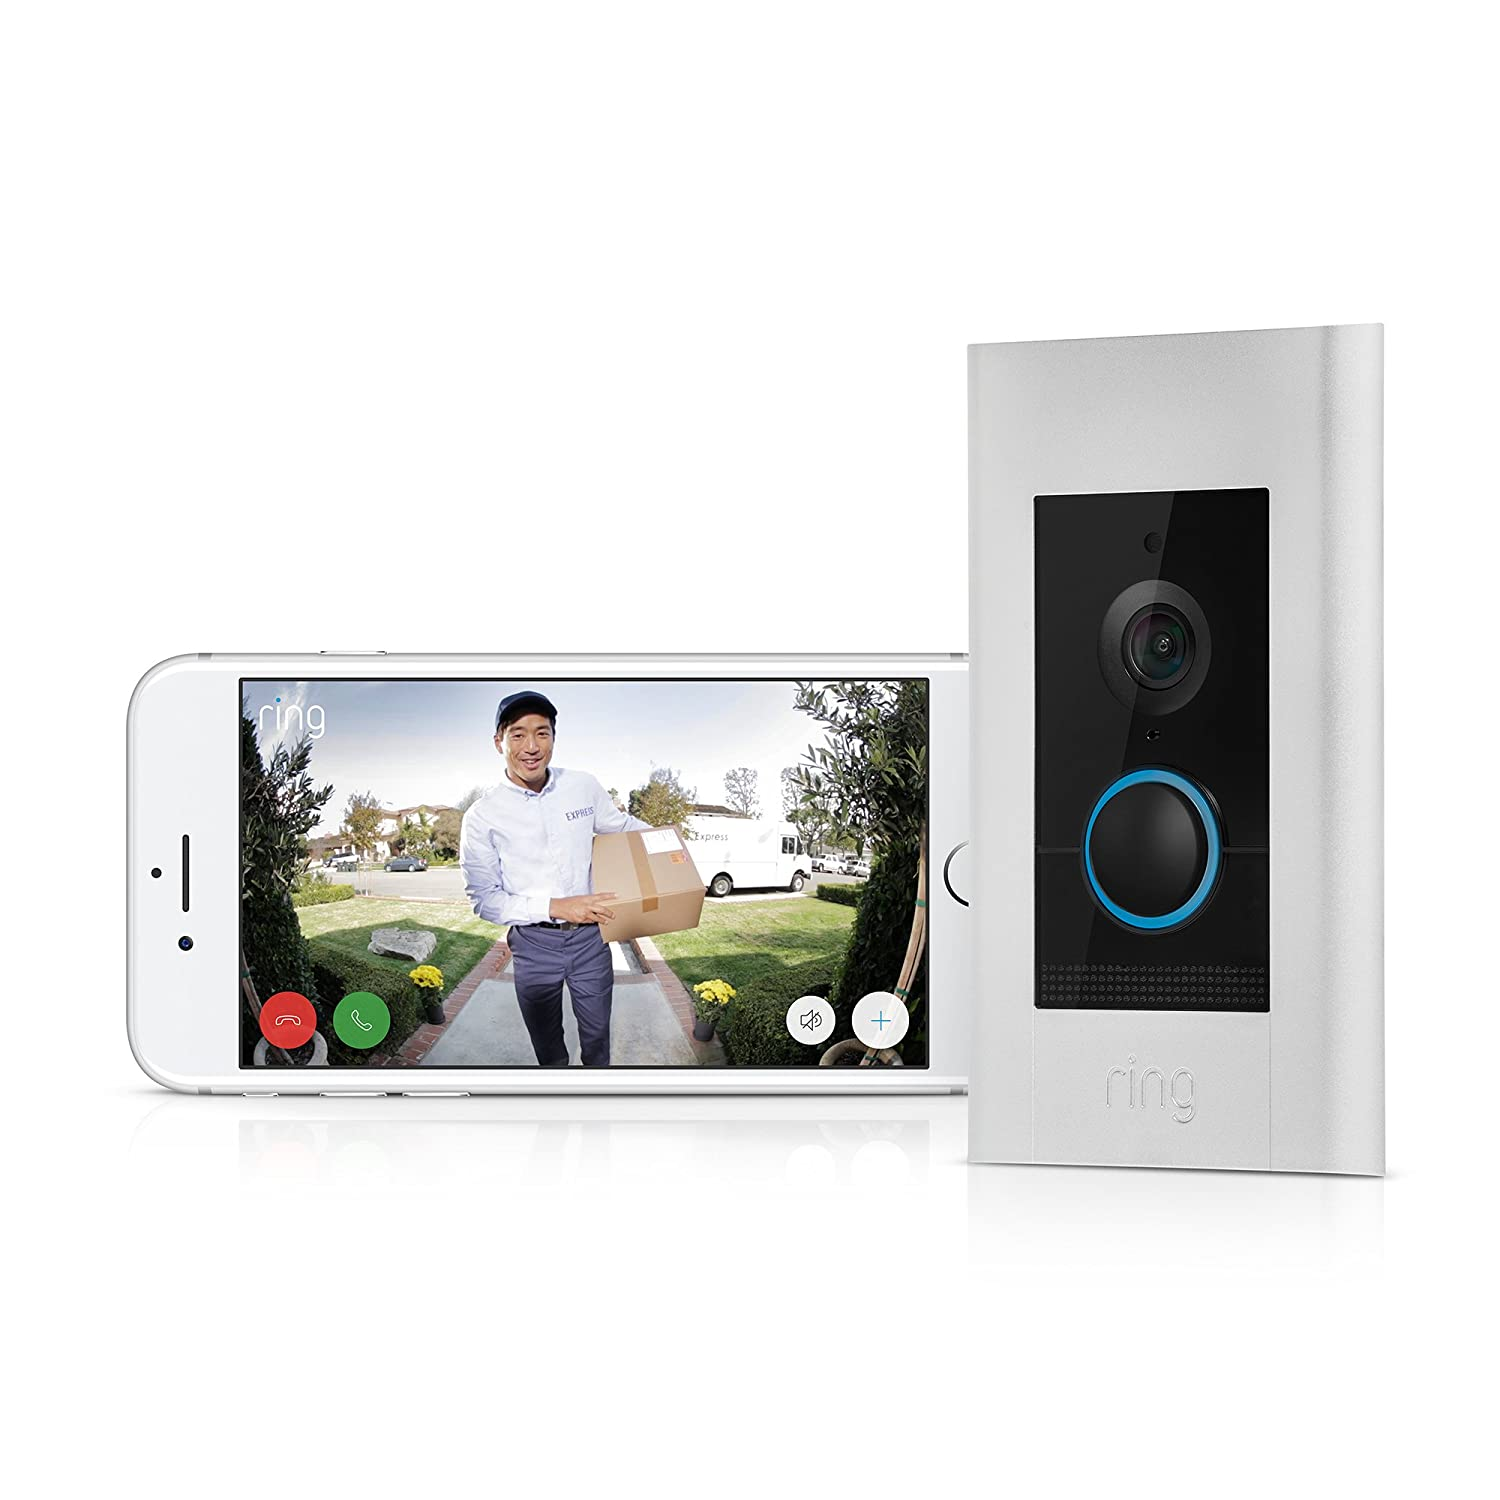 Ring Video Doorbell Elite Amazon Devices Cat5 Wiring Diagram Faceplate